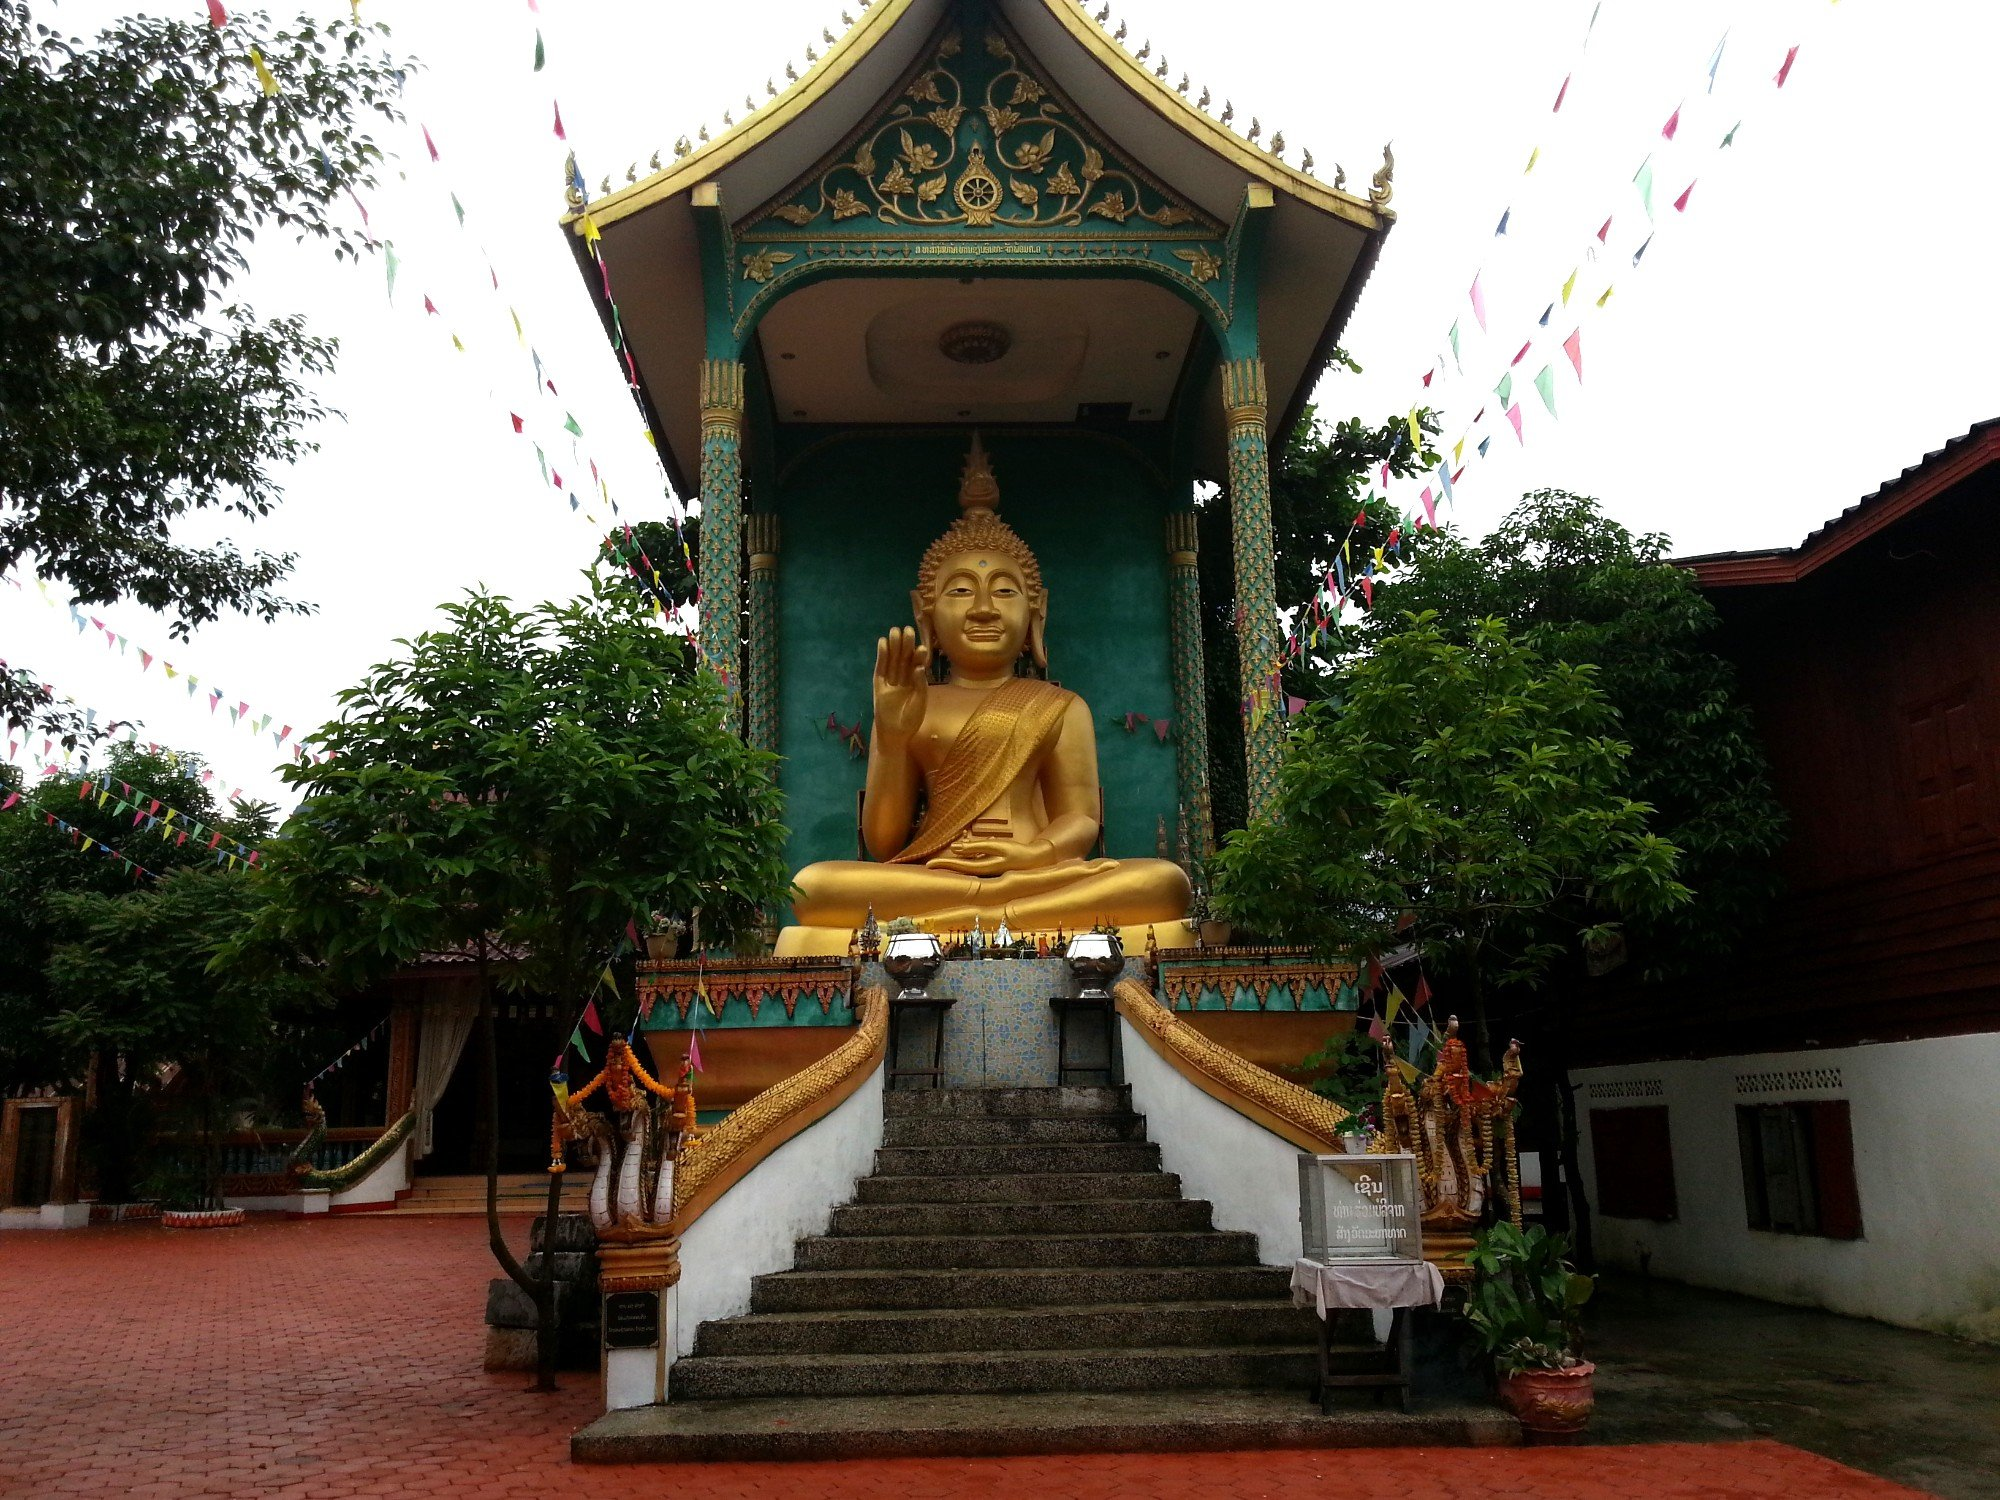 Buddha statue at Wat That